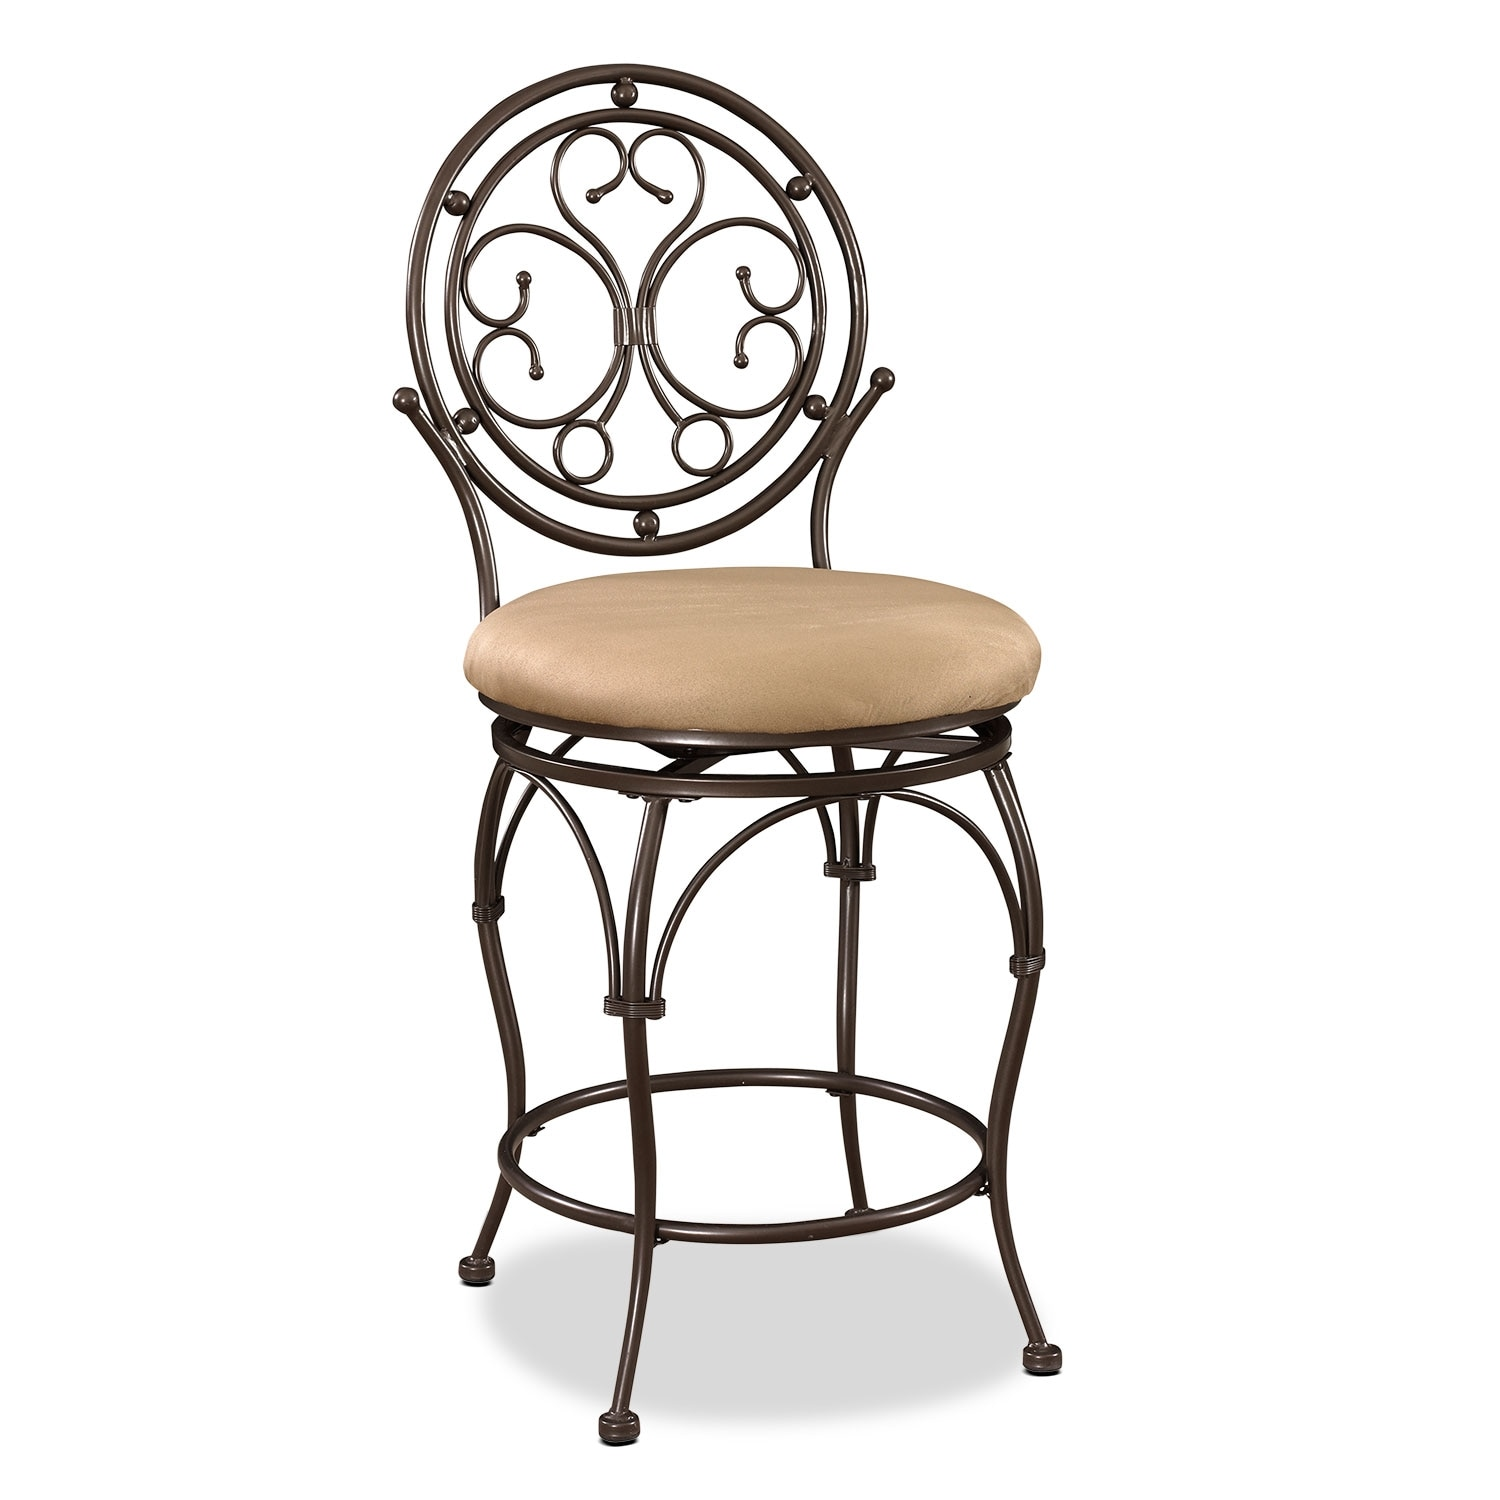 Laurel Counter-Height Stool - Bronze